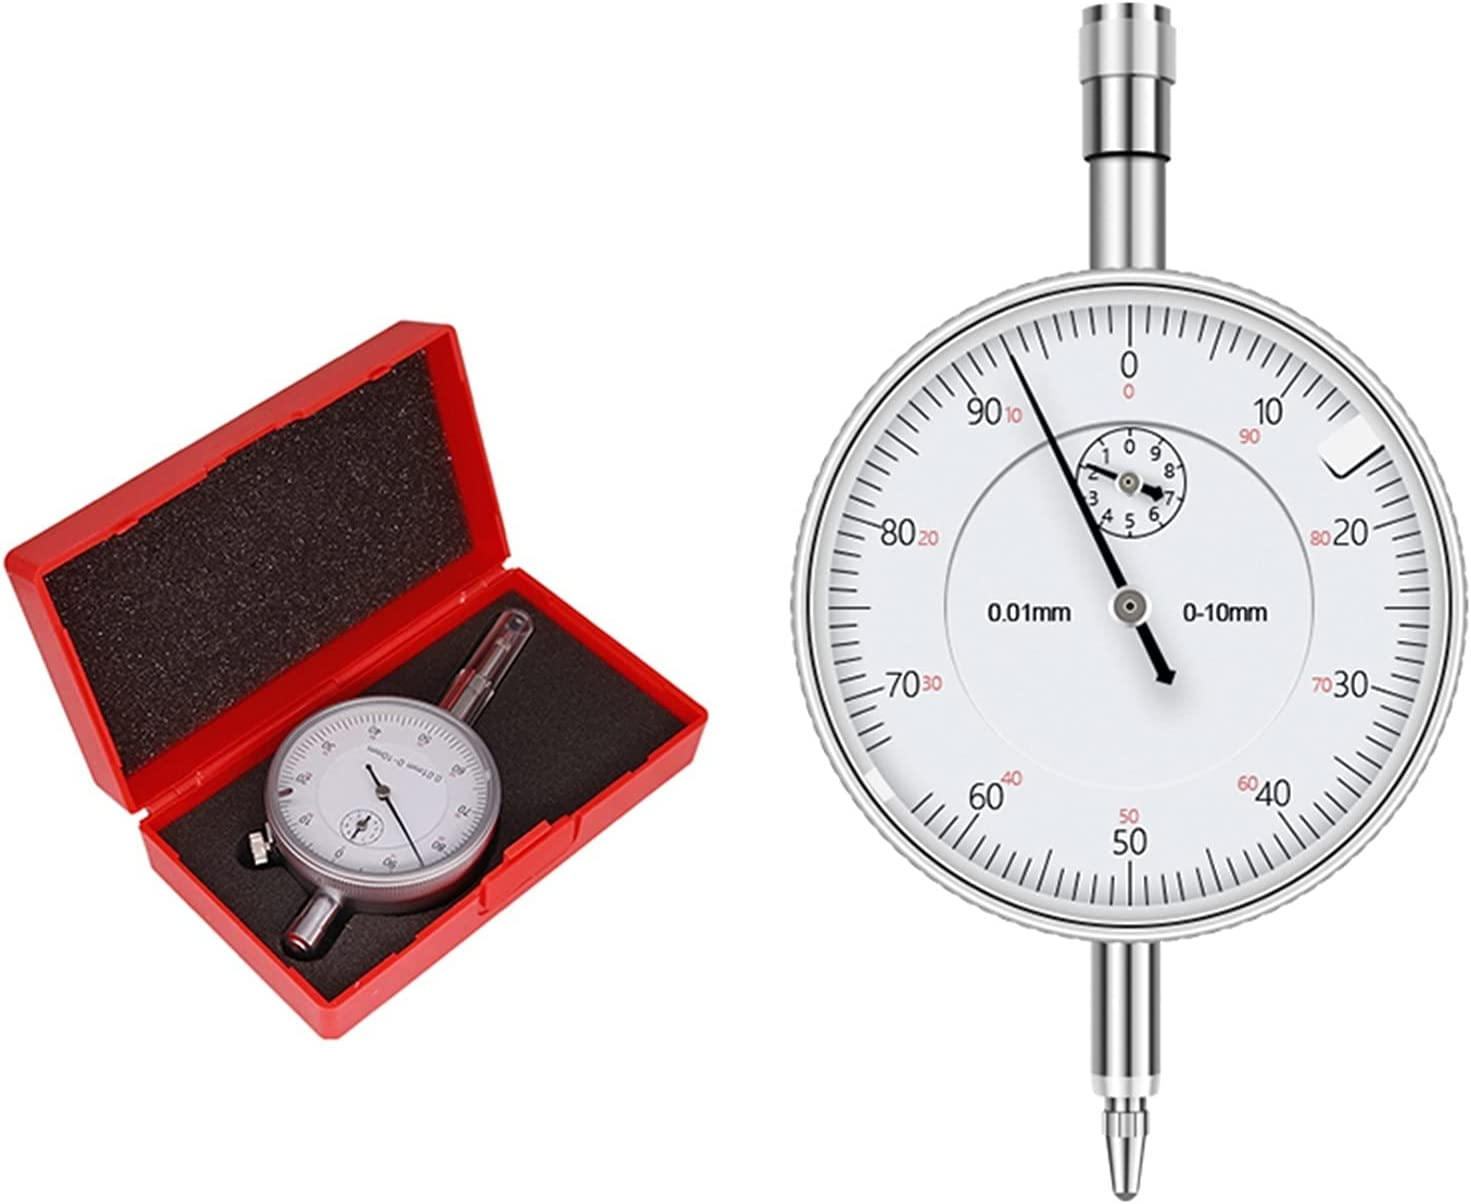 SHENYIFAA Very popular Micrometer Caliper Dial Indicator New Free Shipping Gauge Precise 0.01mm